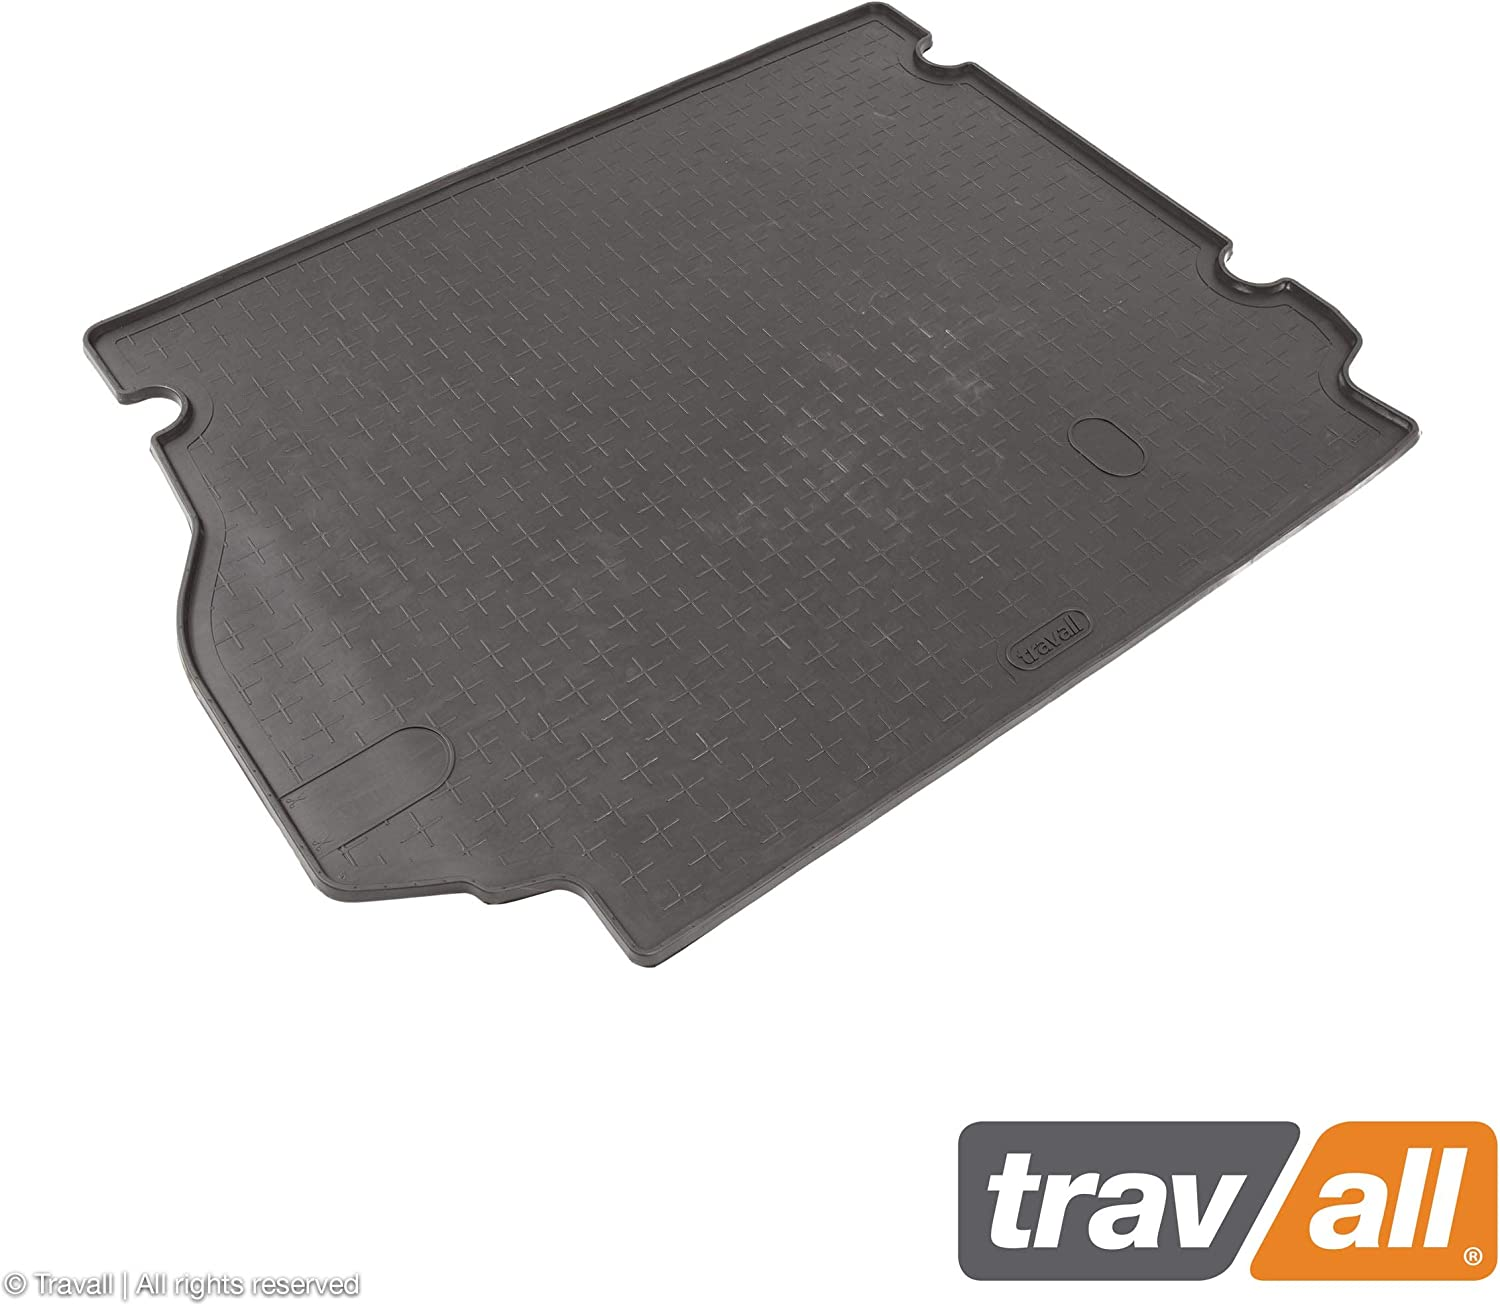 Travall Liner Compatible with Land Rover Range Rover Sport Rubber (2005-2013) TBM1001 - All-Weather Black Rubber Trunk Mat Liner